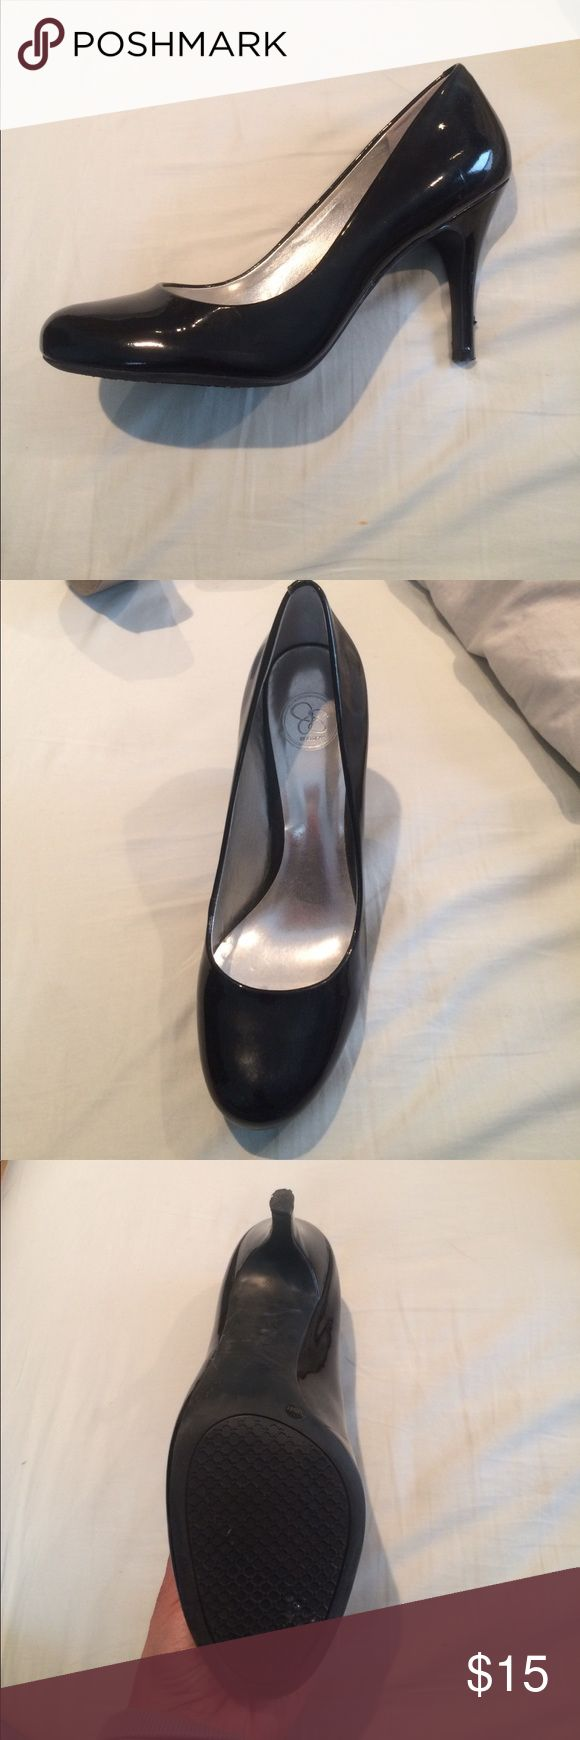 Jessica Simpson Black Pumps Patent Leather, rubber sole, round toe, scuff in left heel Jessica Simpson Shoes Heels